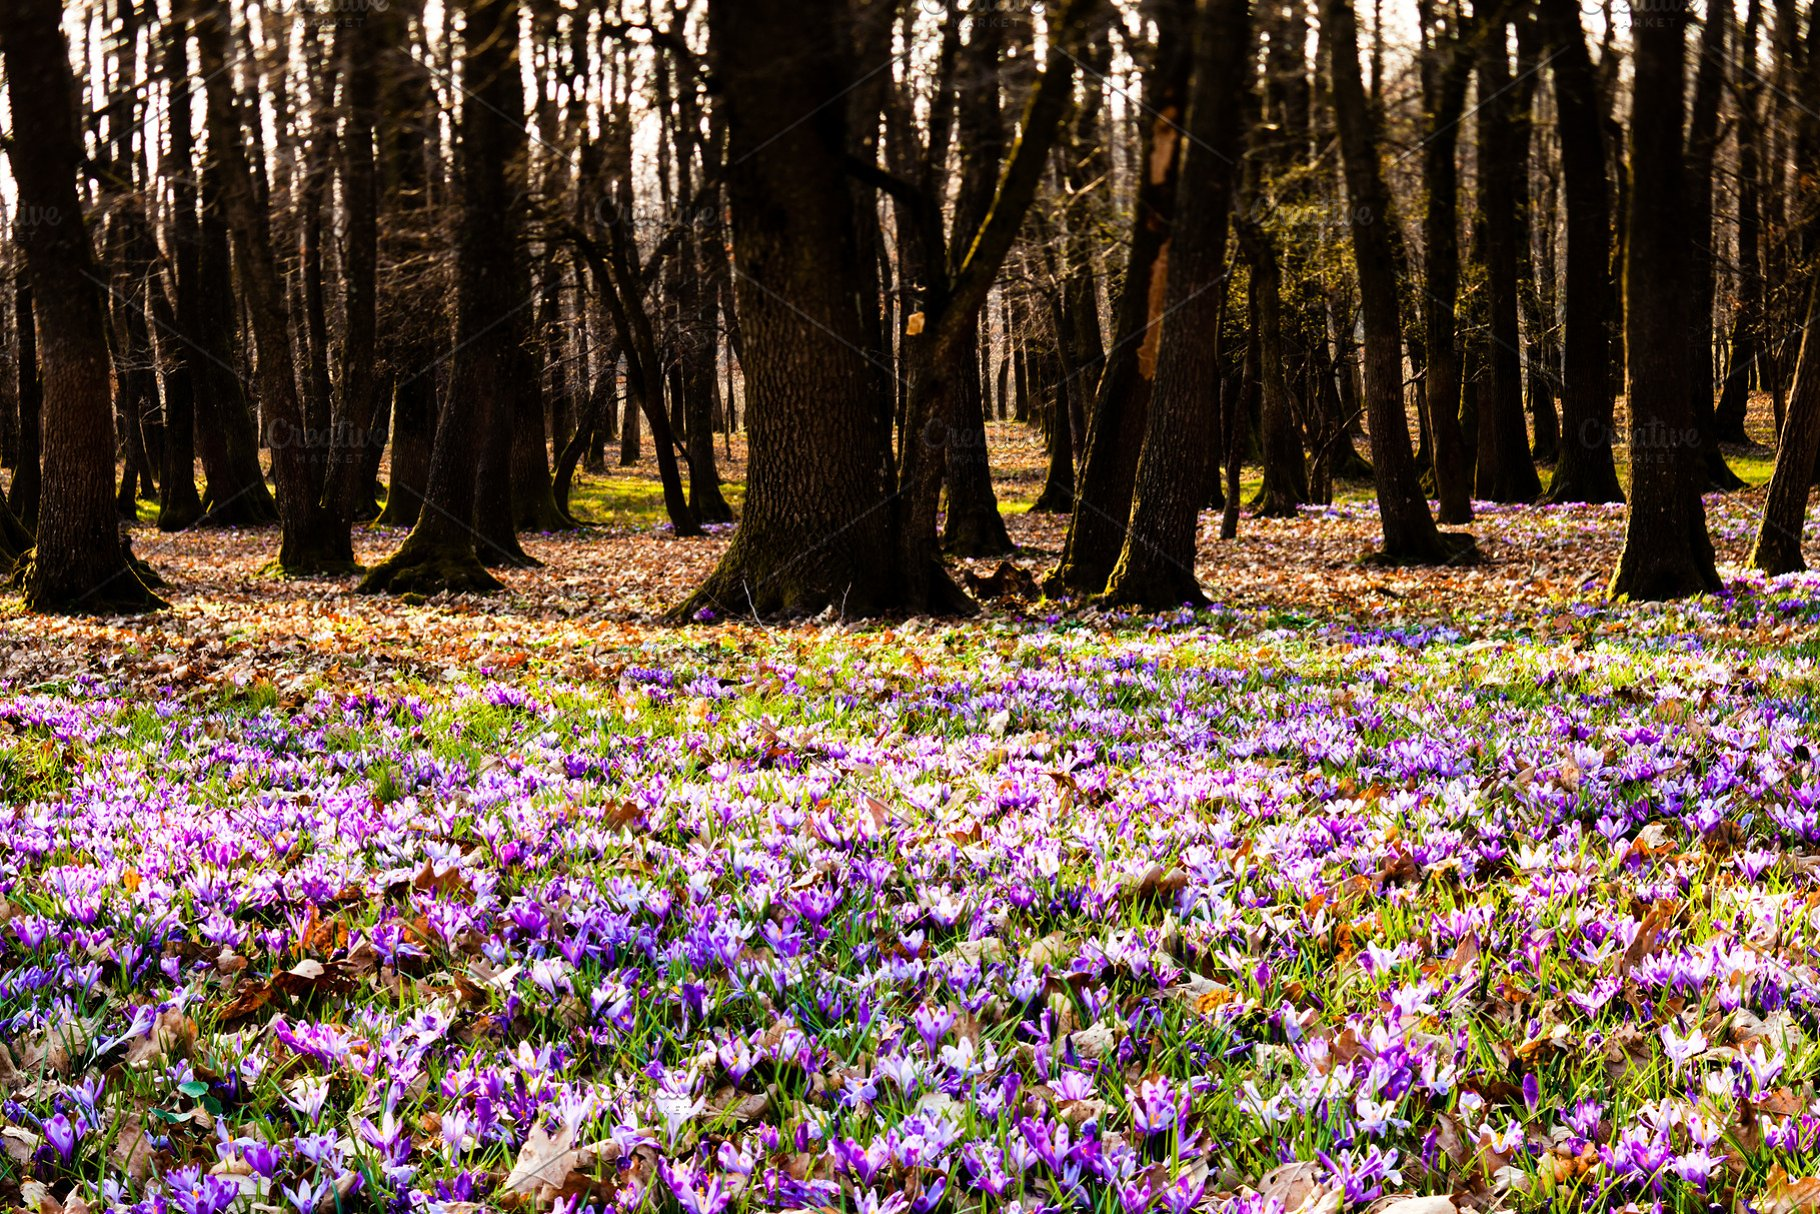 Saffron Flowers Blossom In The High Quality Nature Stock Photos